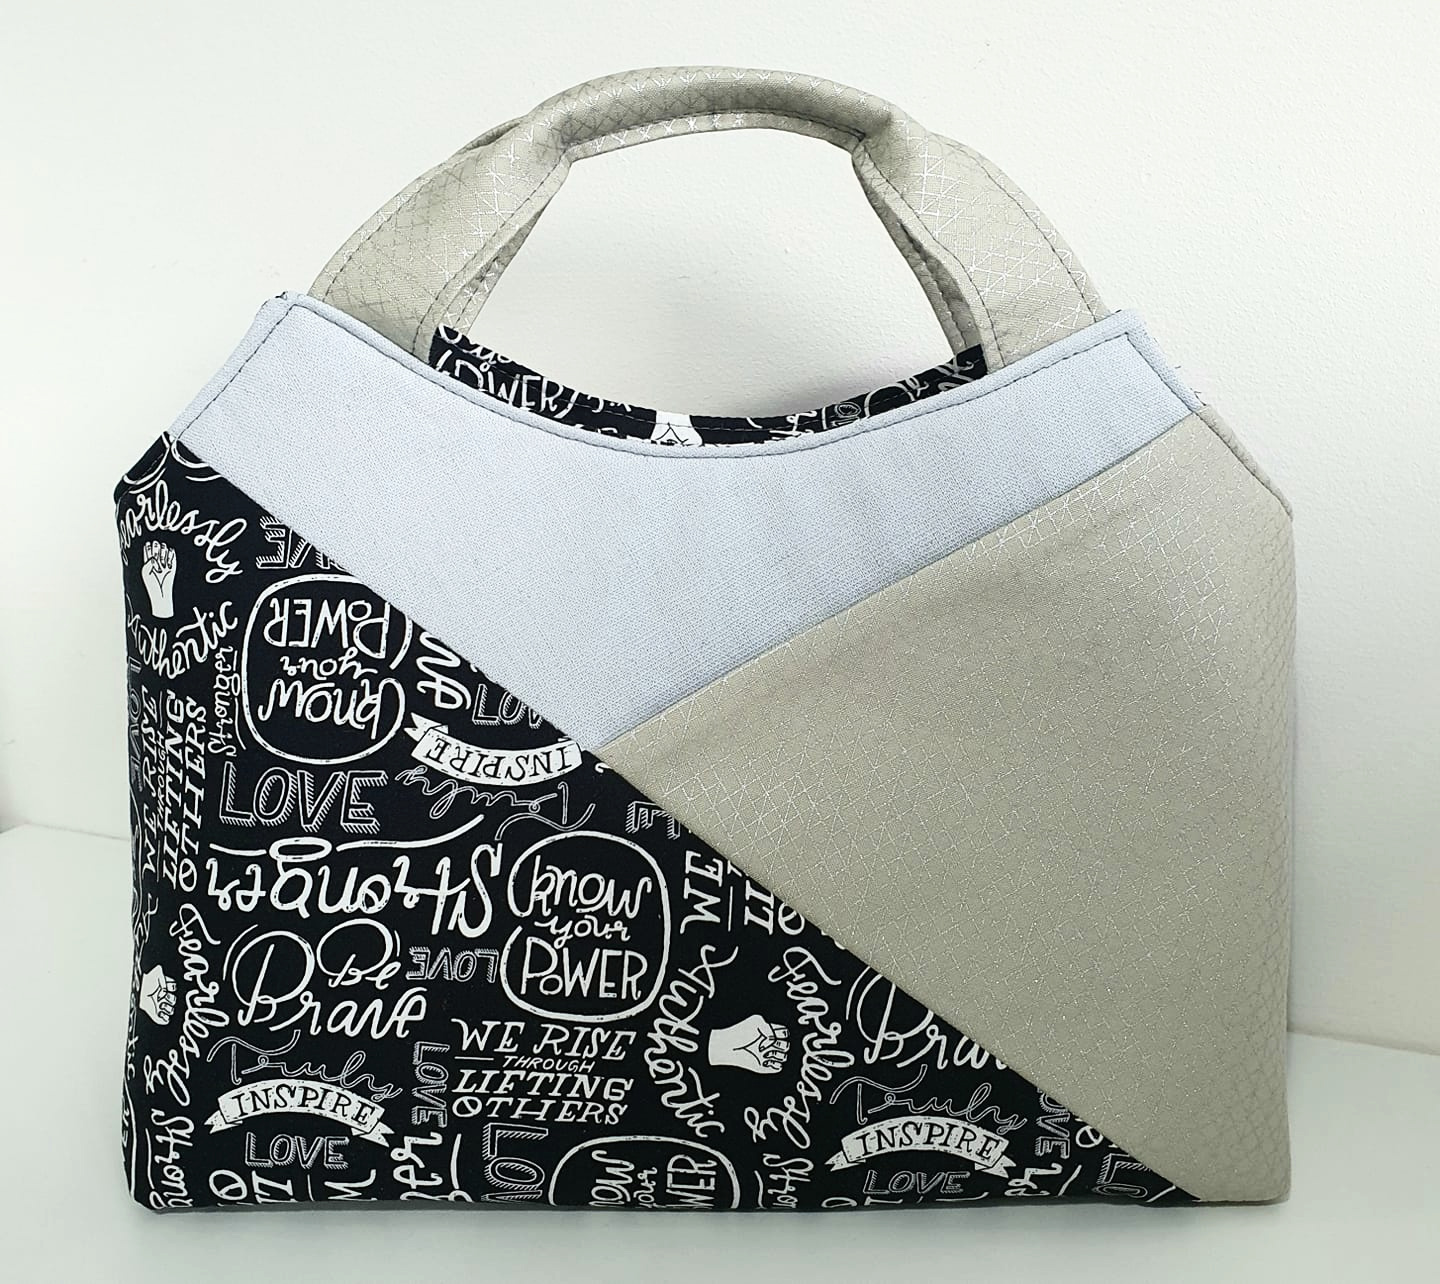 The Hope Handbag designed by Sewing Patterns by Mrs H for The Bag of the Month Club